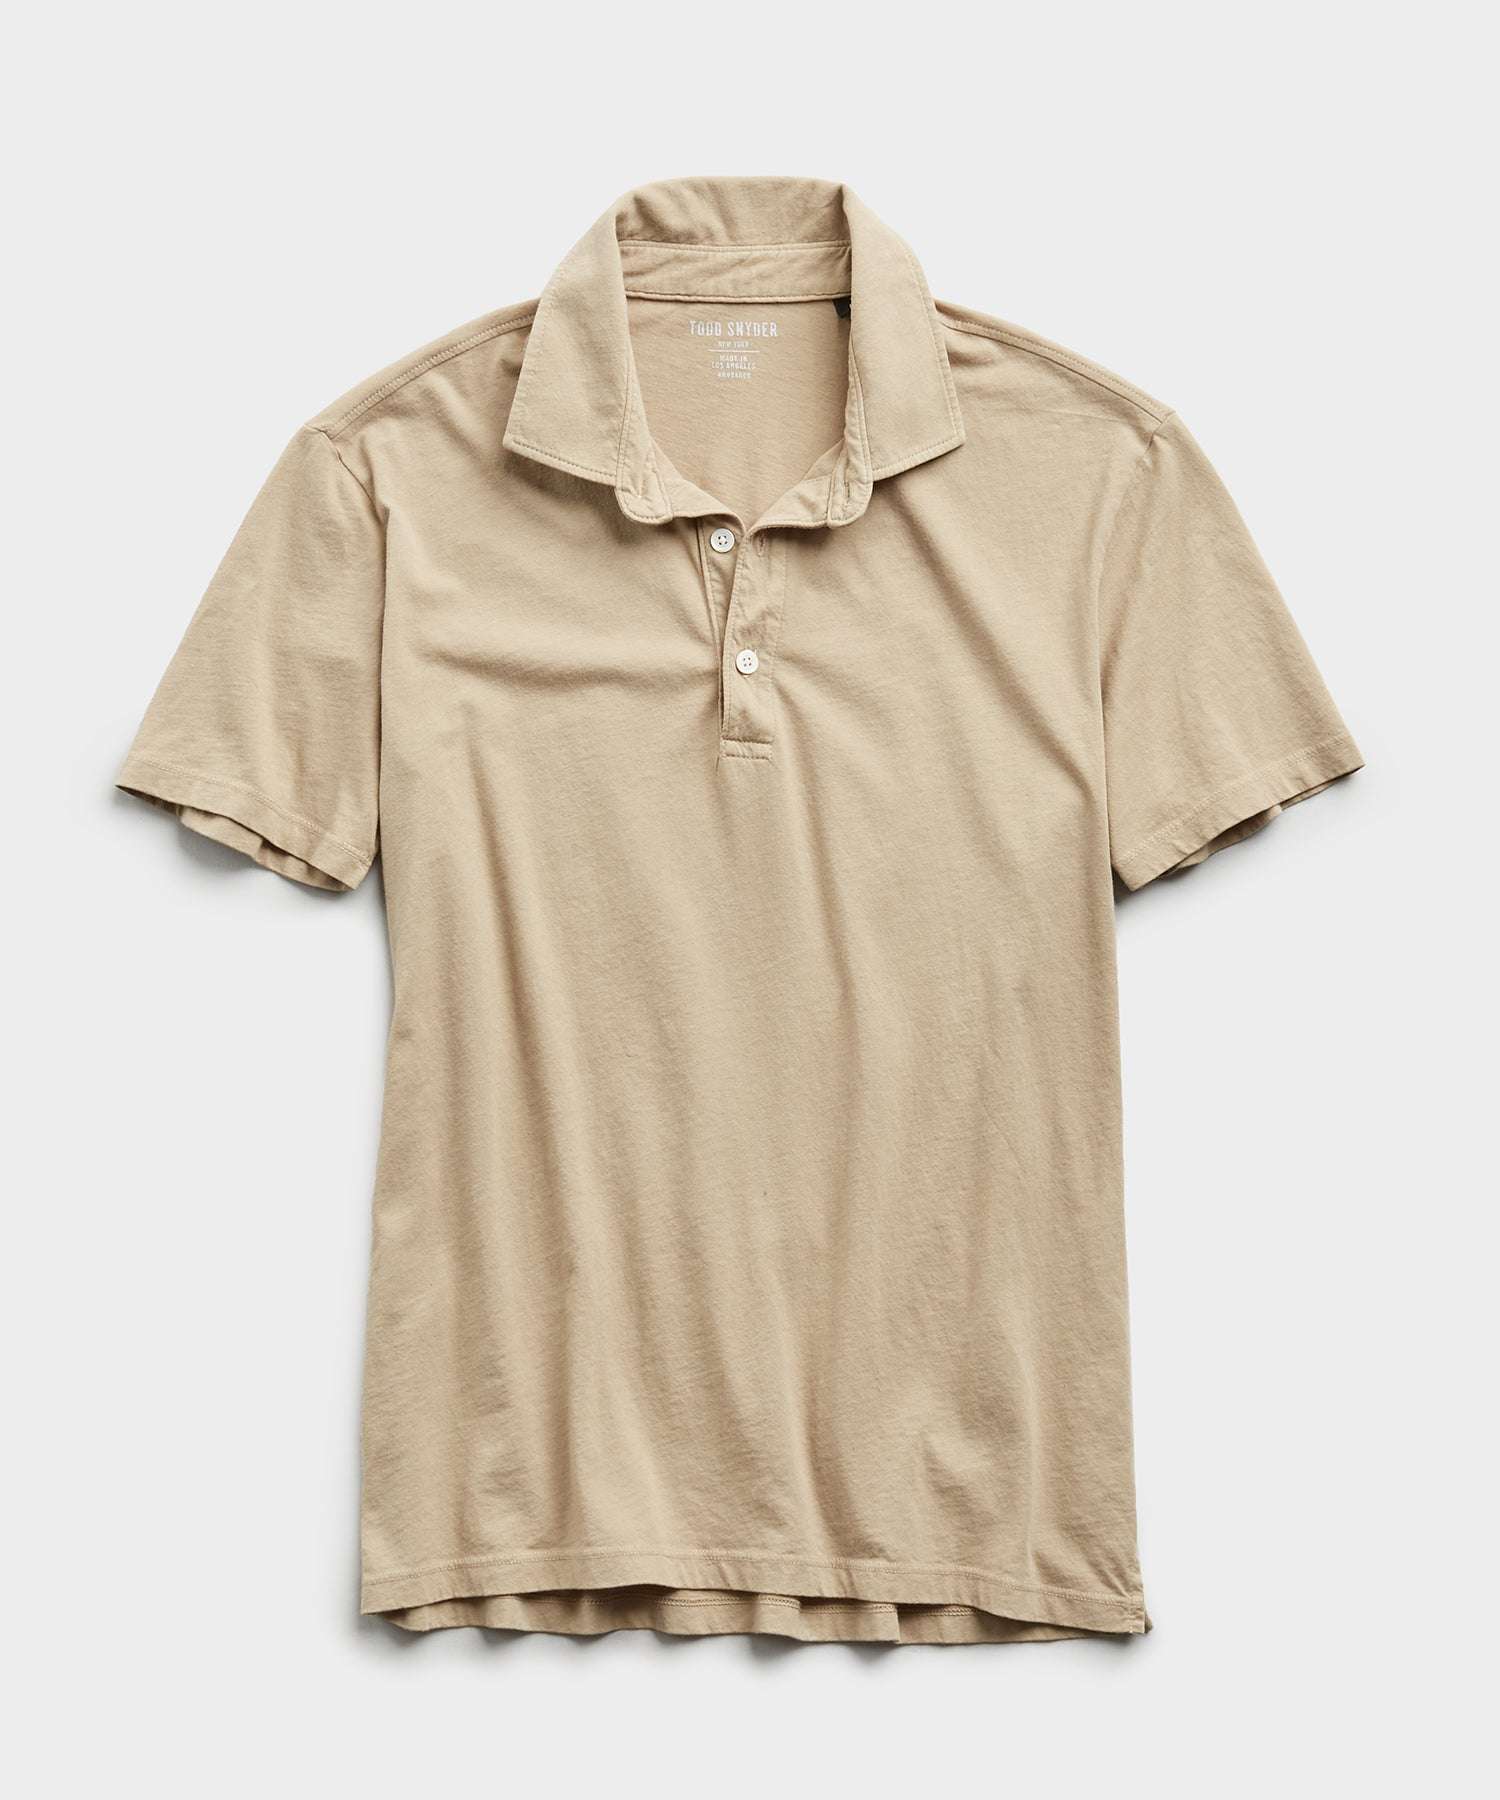 Made in L.A. Short Sleeve Jersey Polo in Toasted Almond